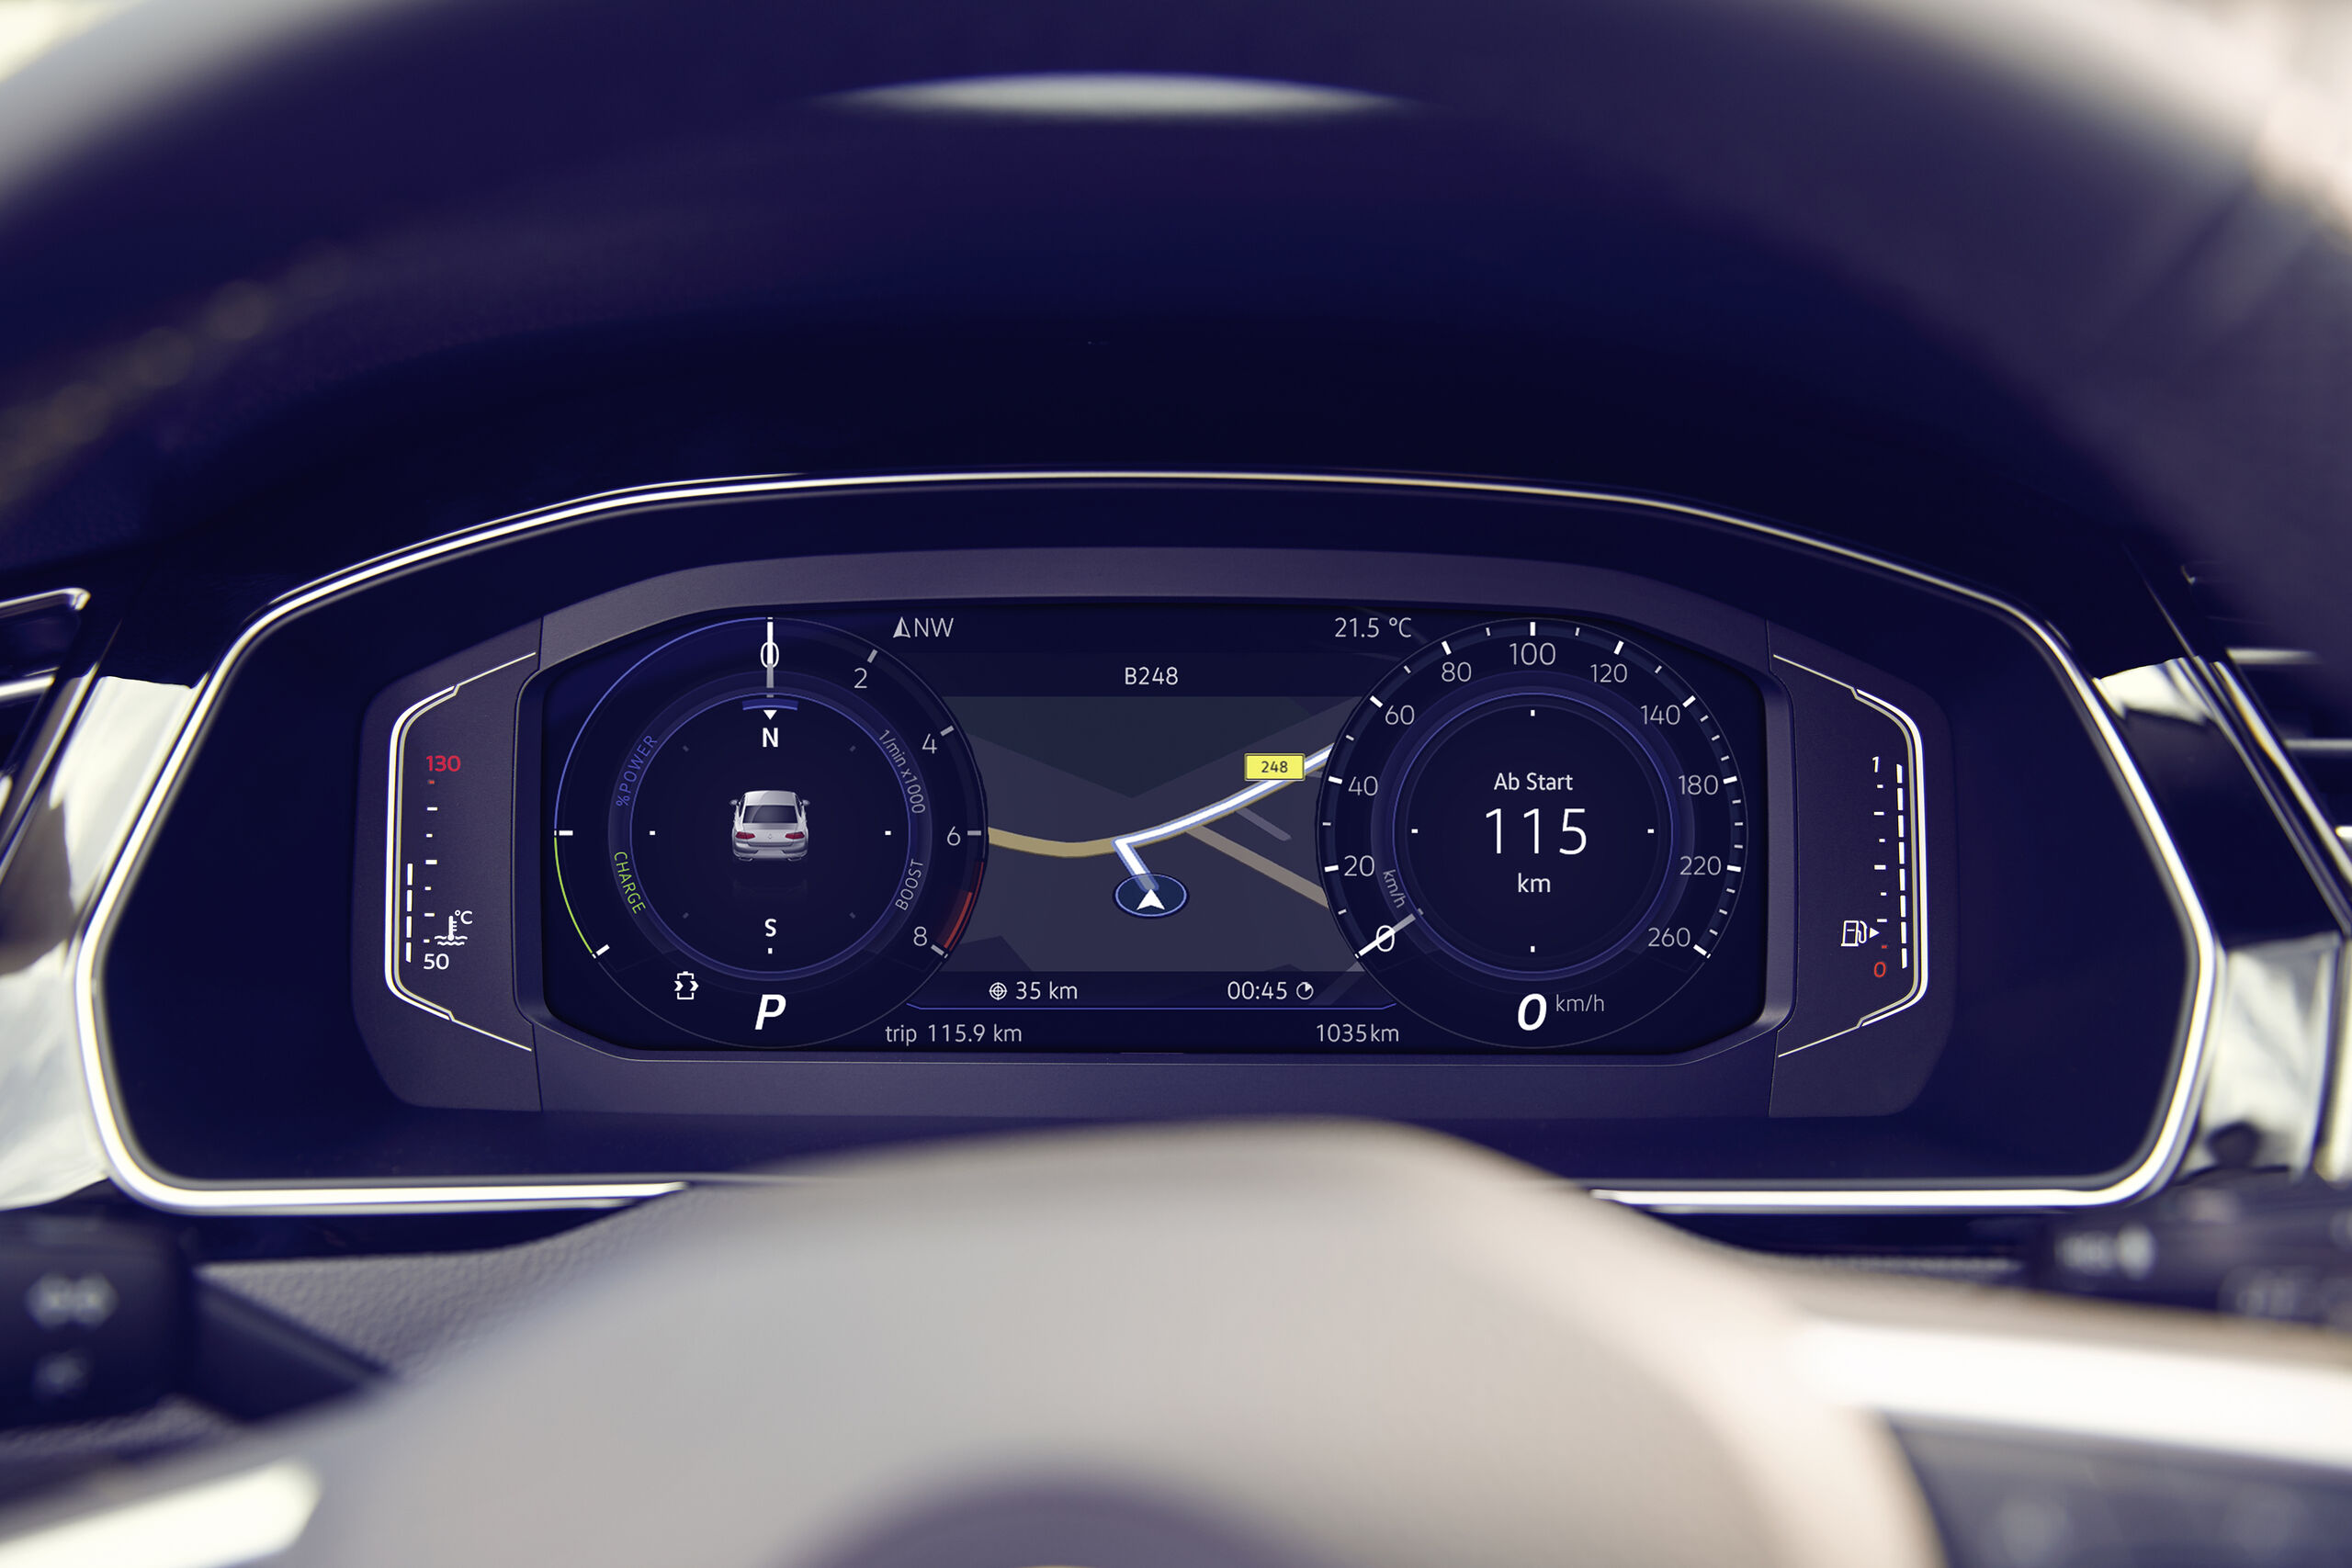 VW Passat Alltrack - Digital Cockpit